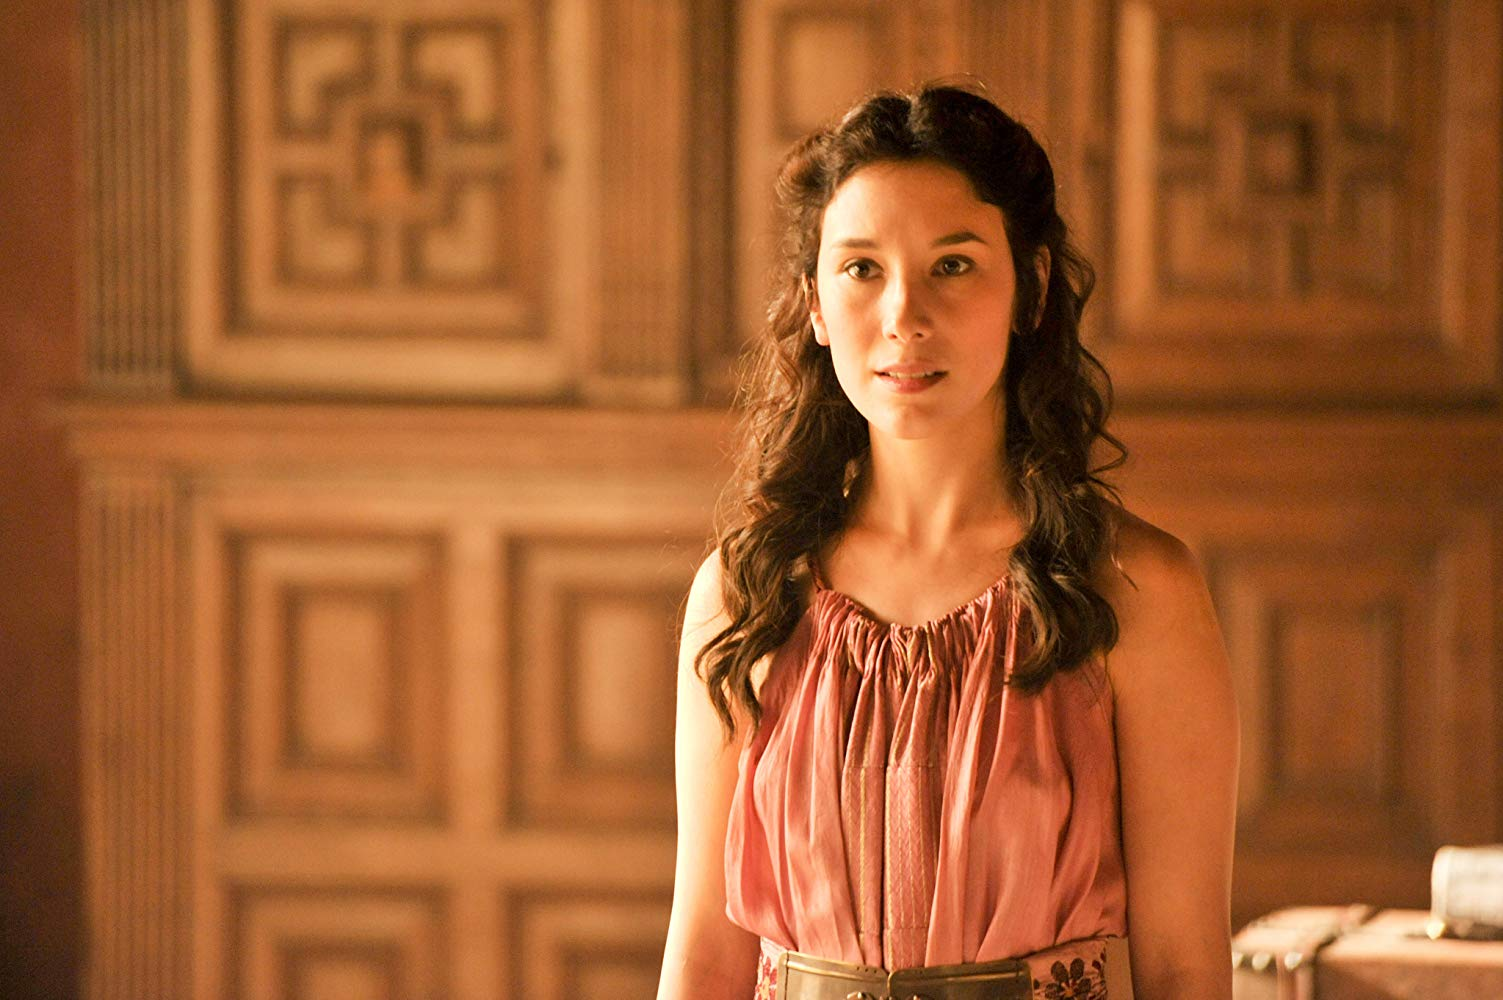 Real Life Adult Stars You Never Knew Were In Game Of Thrones